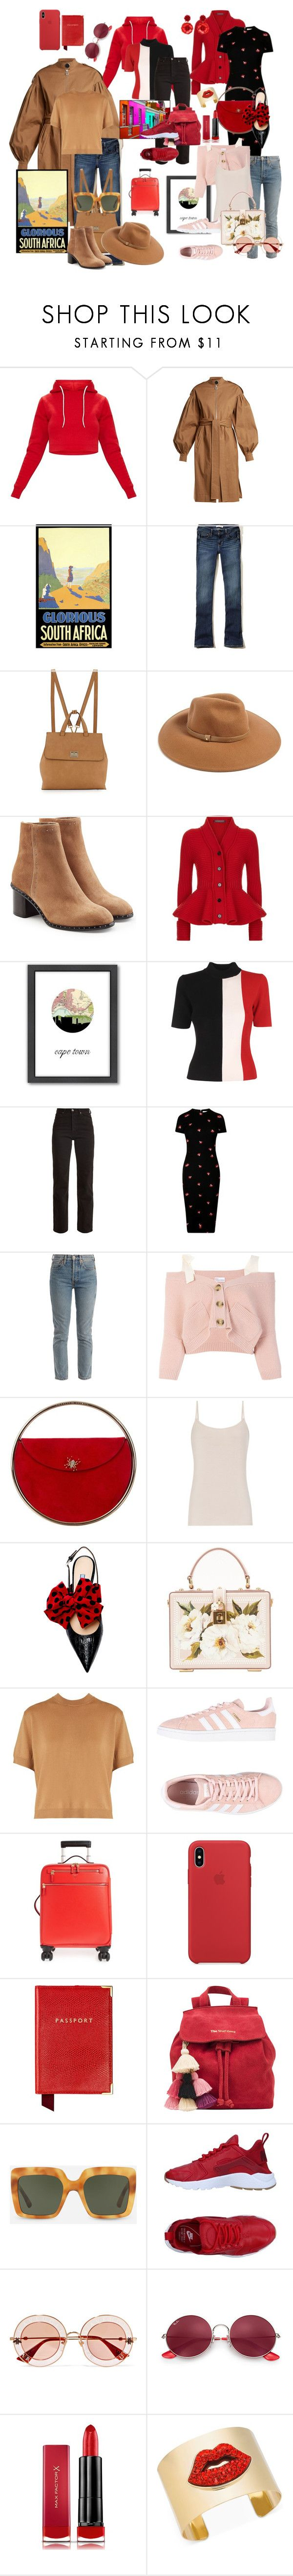 """""""Cape Town"""" by mynextlife ❤ liked on Polyvore featuring Osman, Hollister Co., Neiman Marcus, Forever 21, rag & bone, Alexander McQueen, Americanflat, Solace, Eve Denim and Victoria Beckham"""